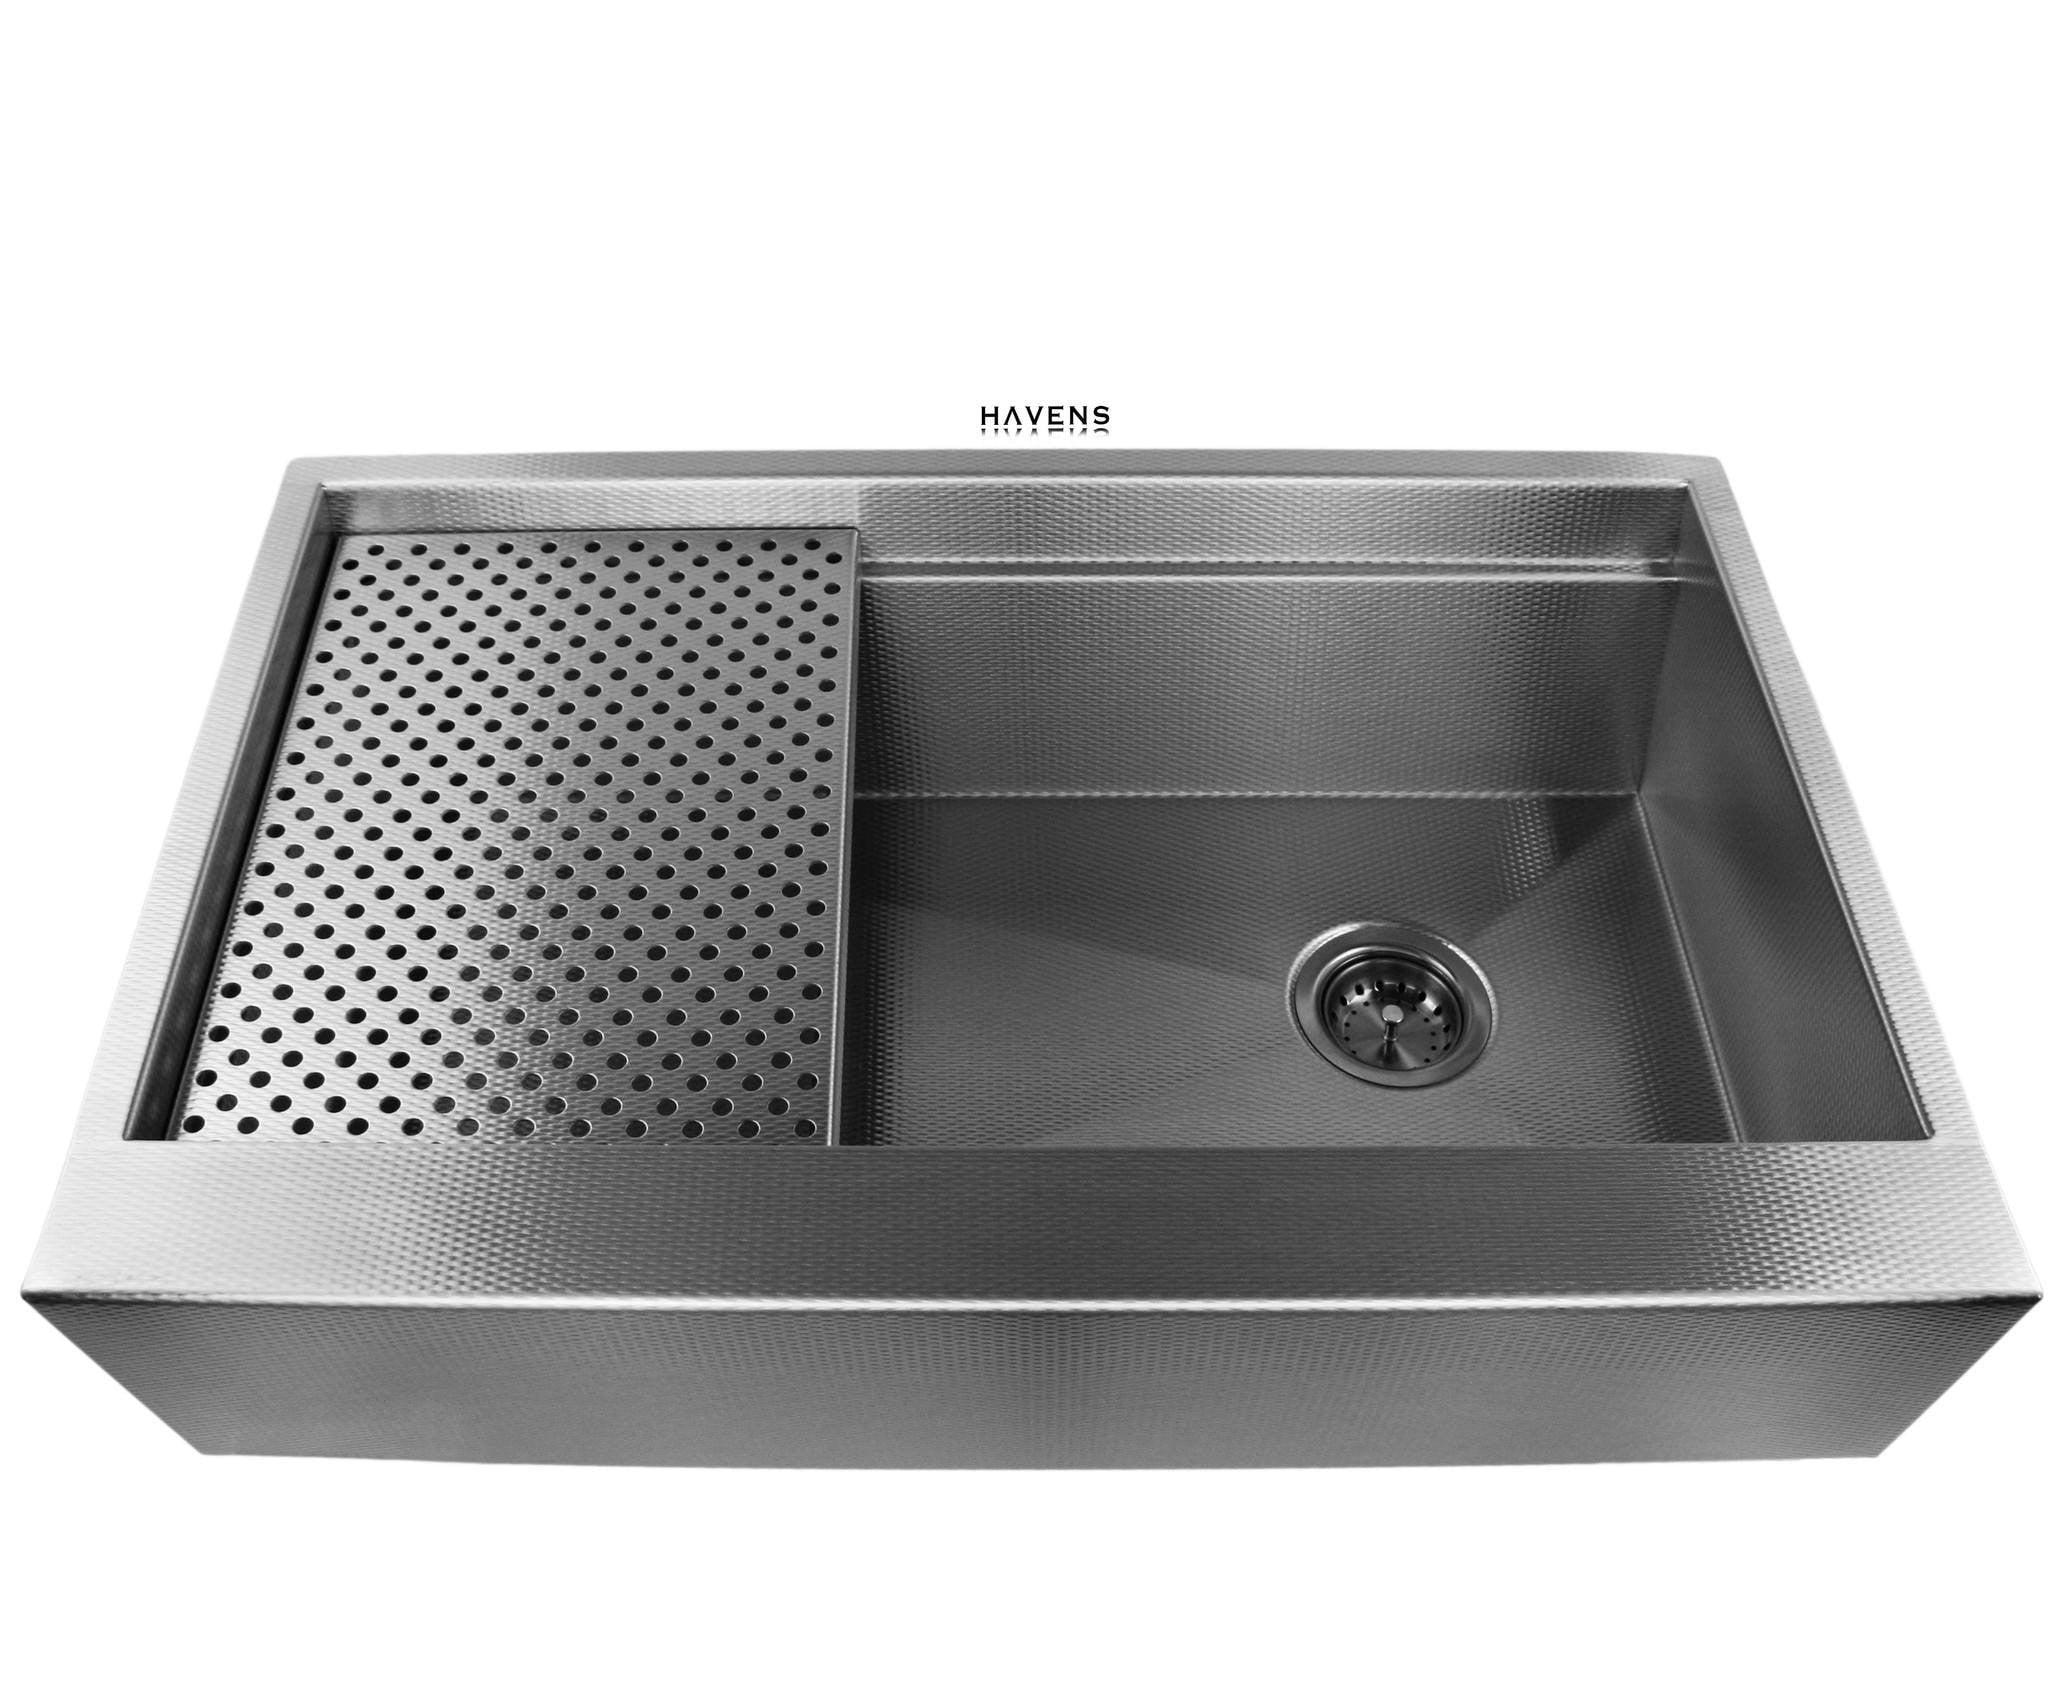 Awesome Nova Stainless Steel Sink